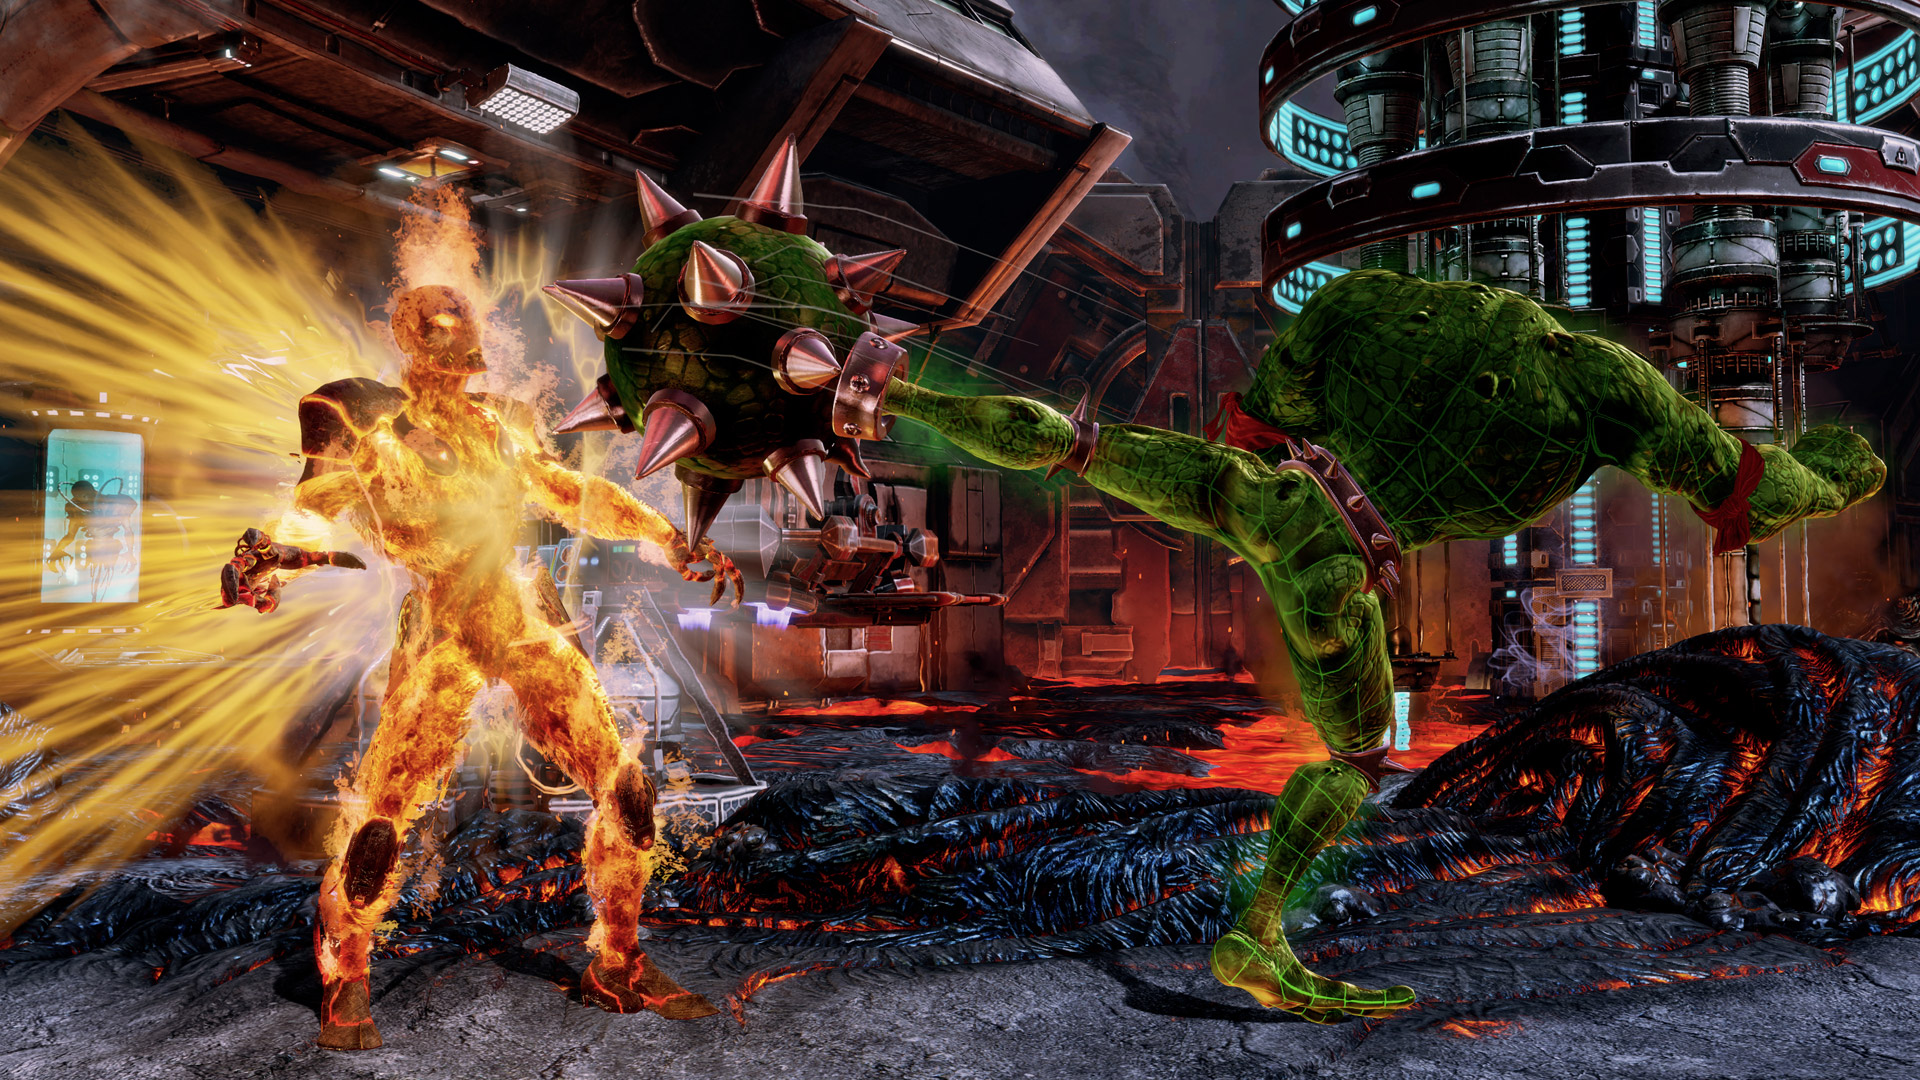 Free Killer Instinct Wallpaper in 1920x1080